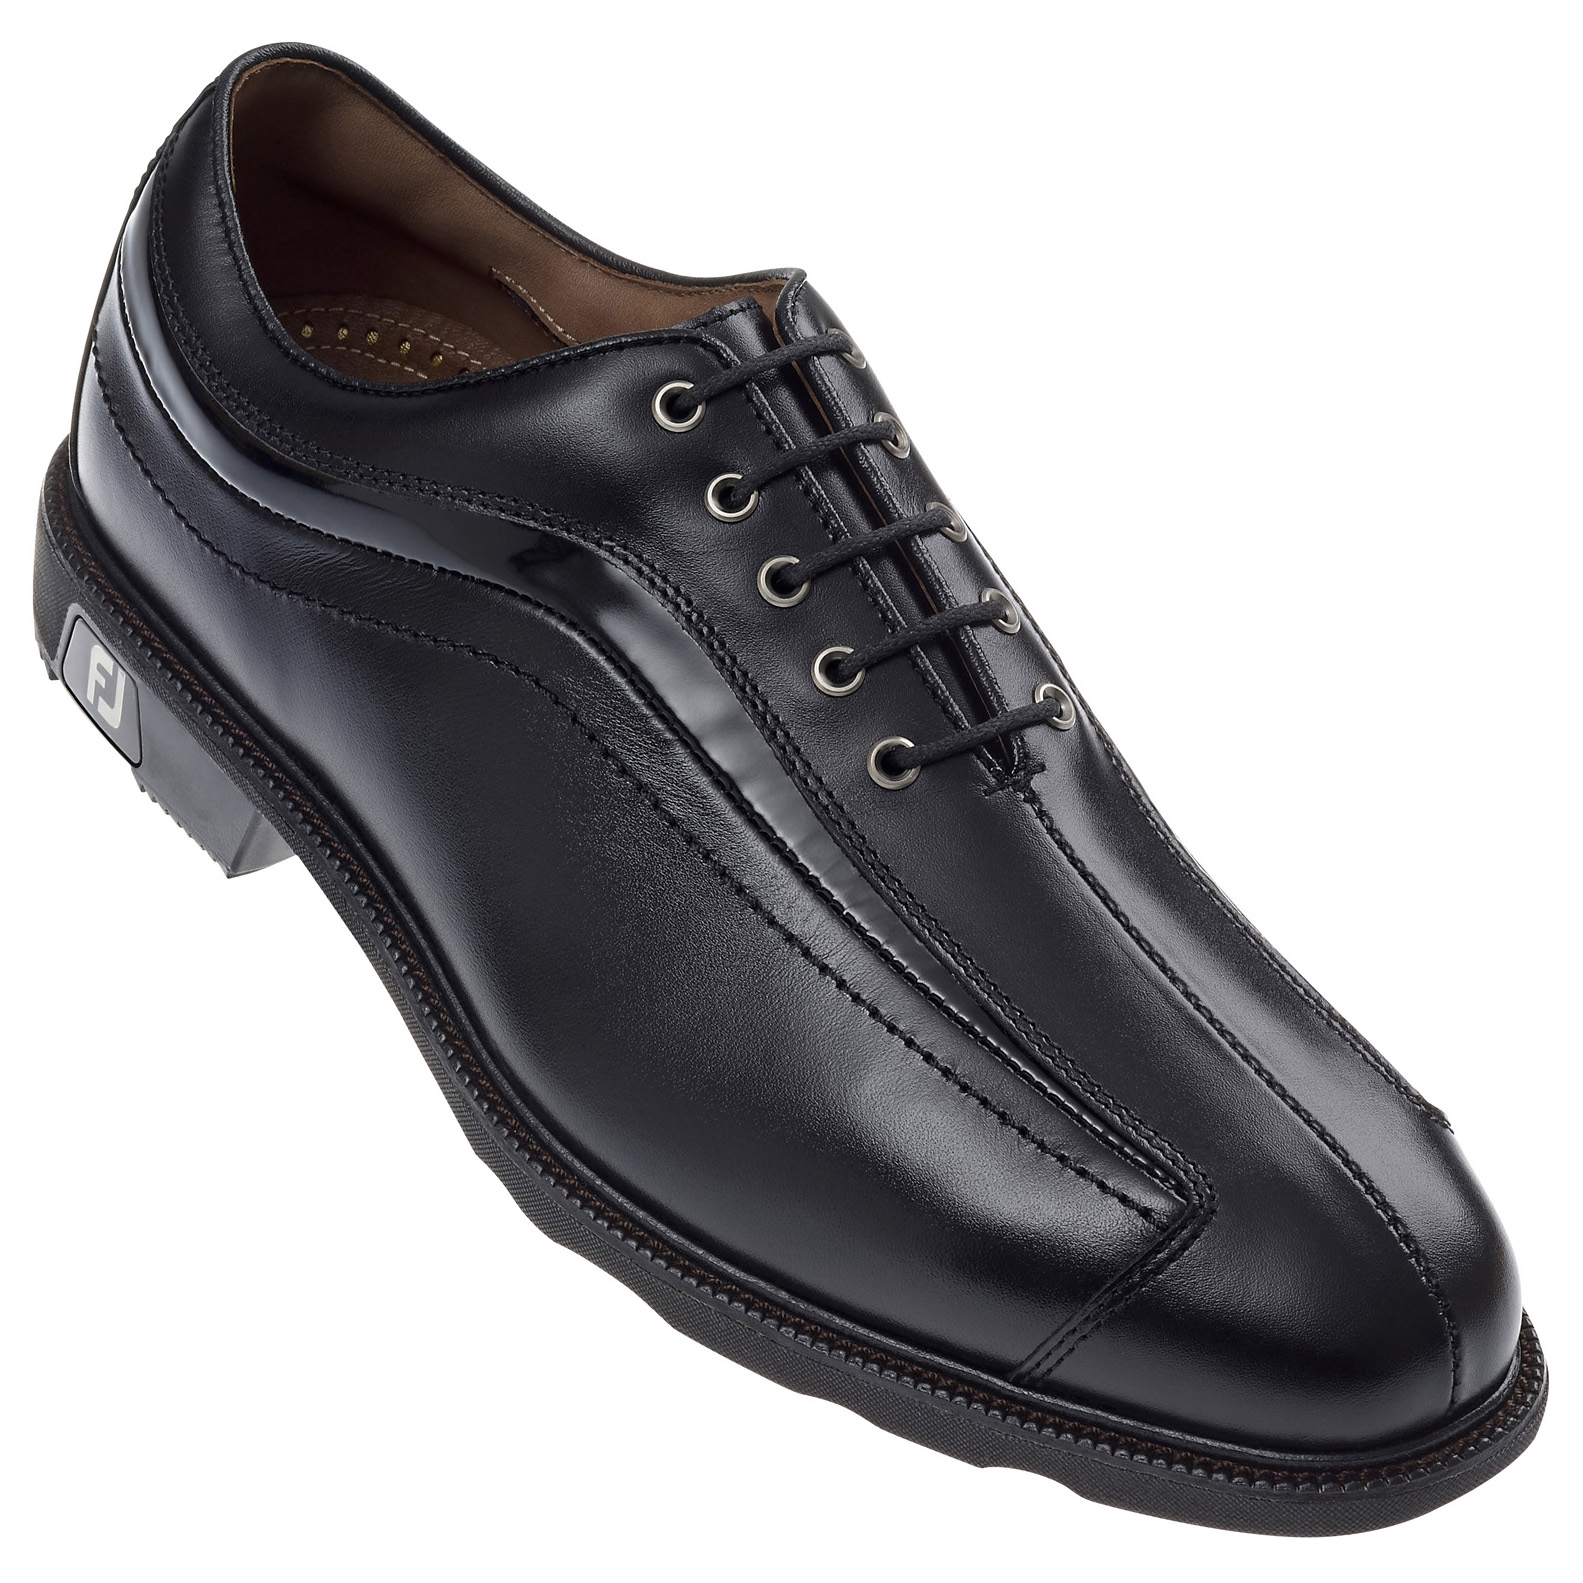 Black Patent Leather Golf Shoes